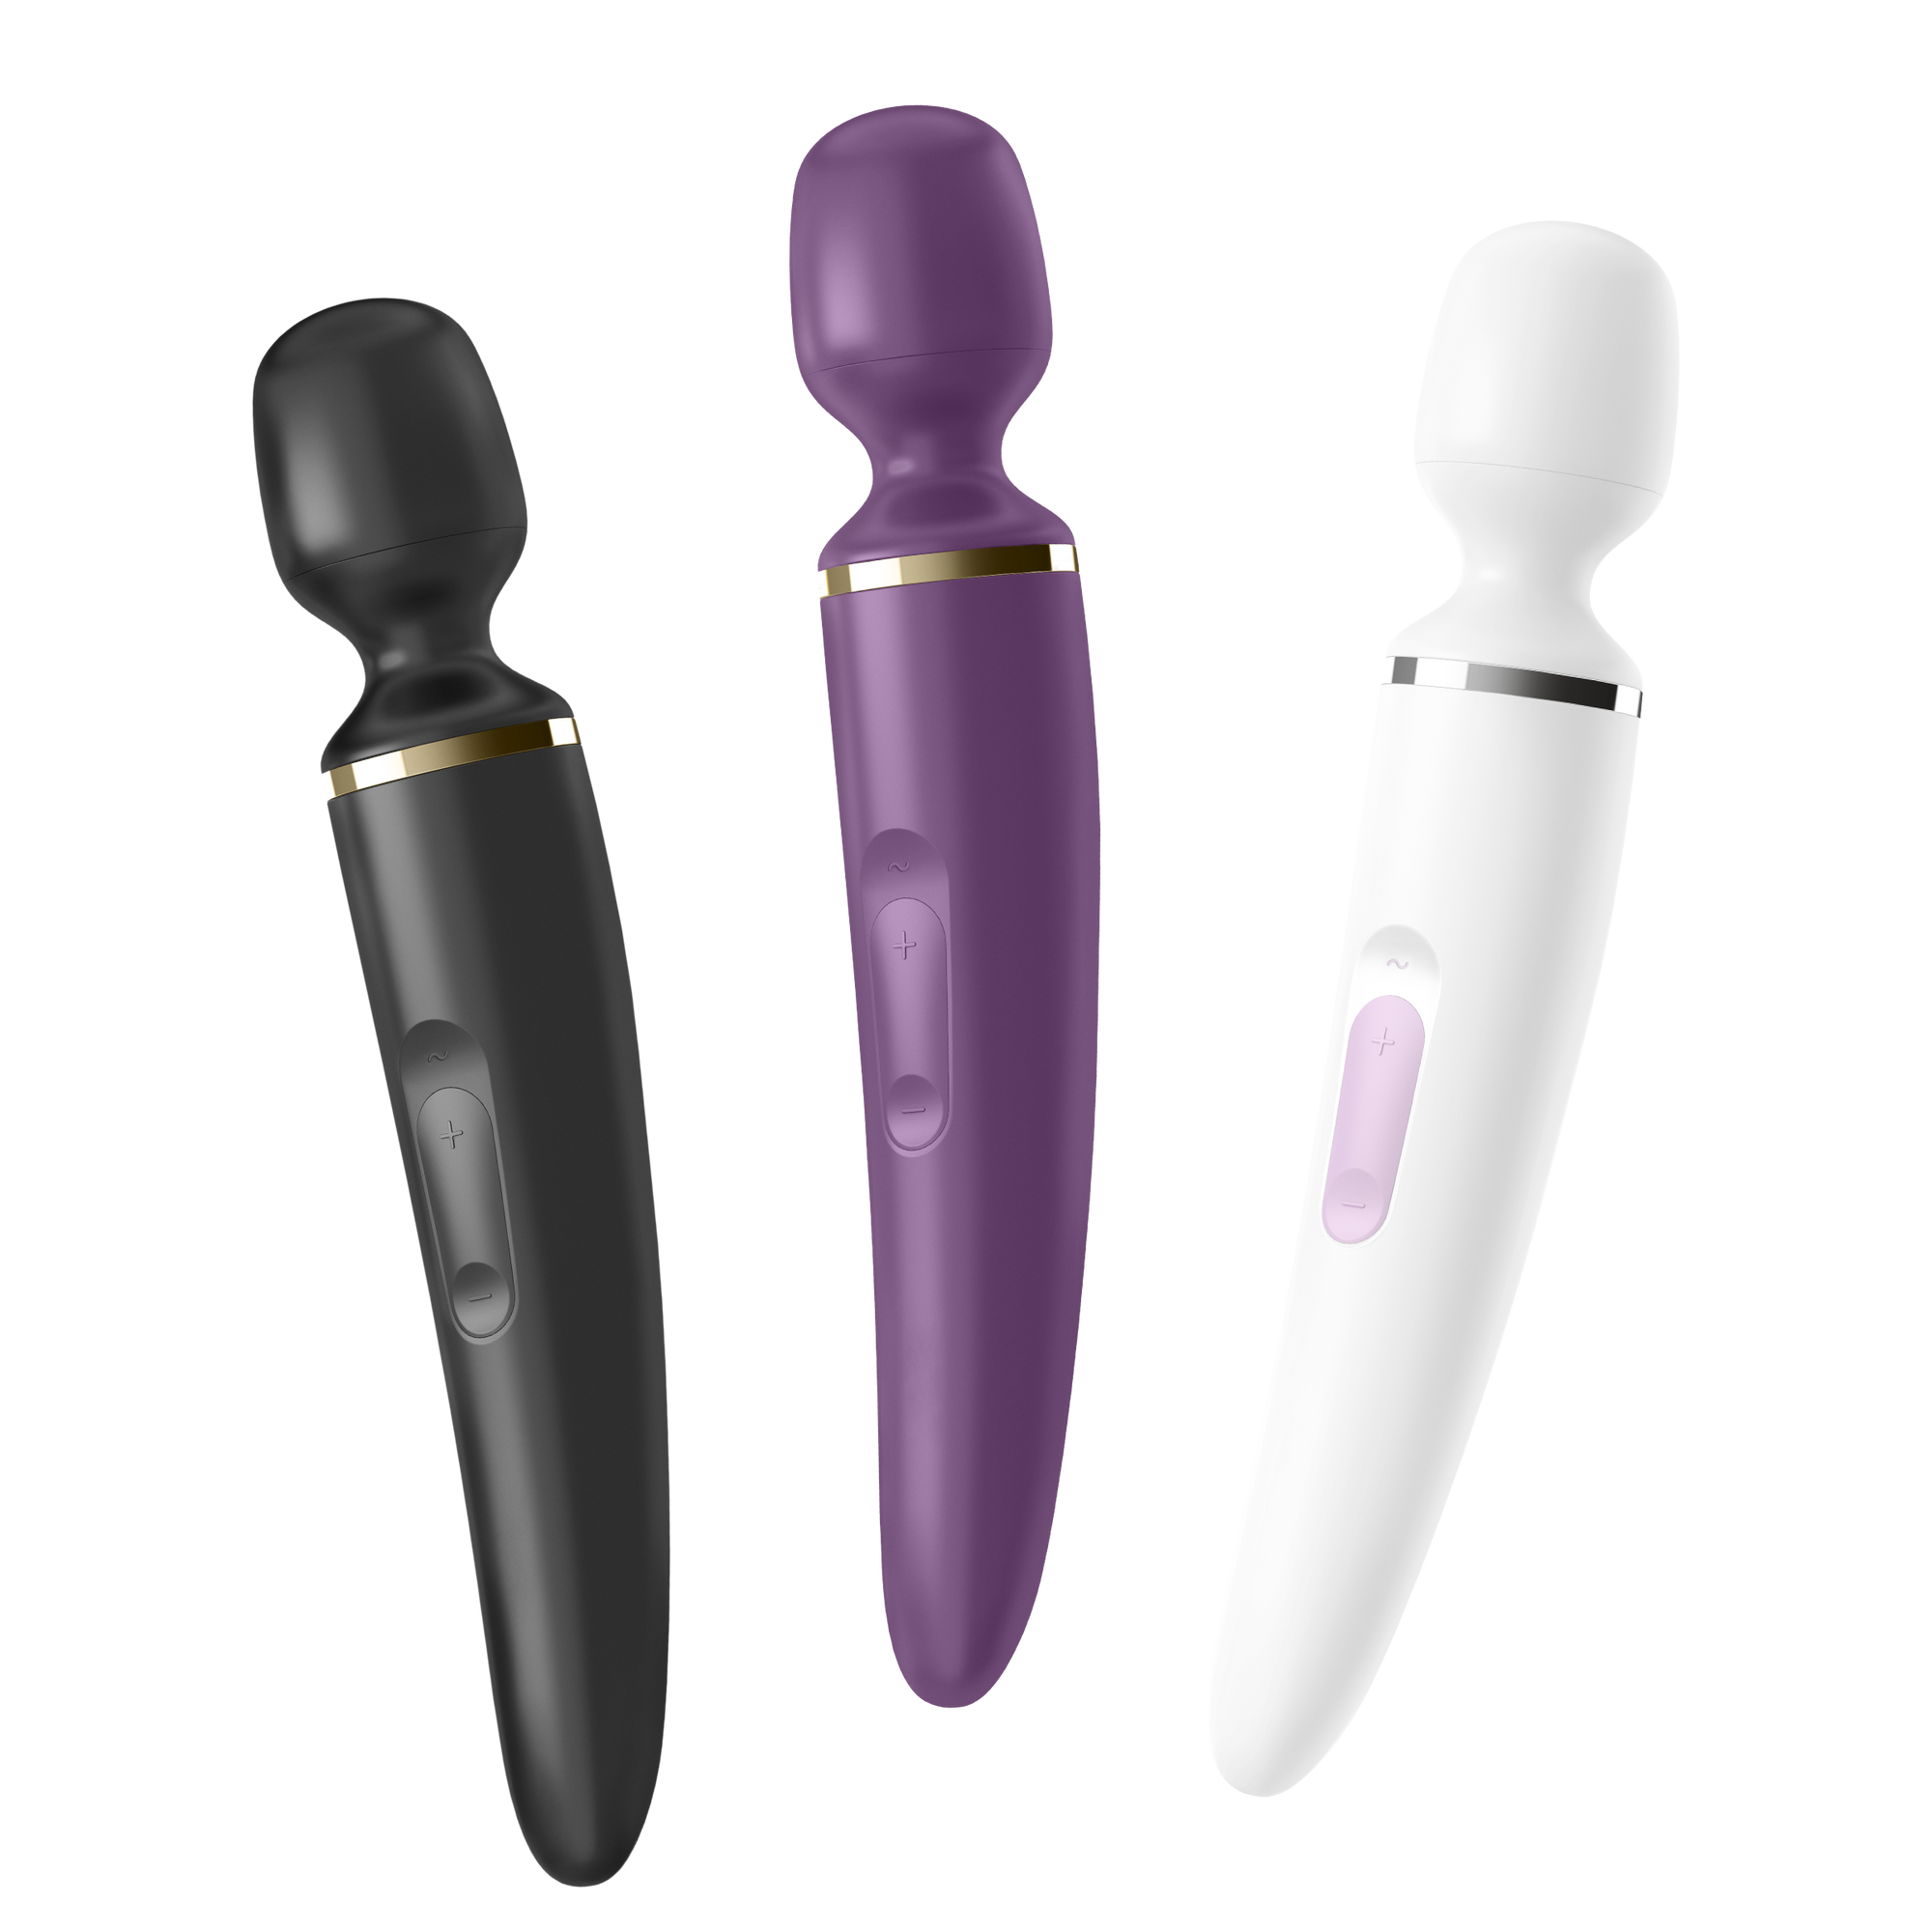 Satisfyer Wand-Er Woman -  USB Rechargeable Massager Wand front image saucy hq